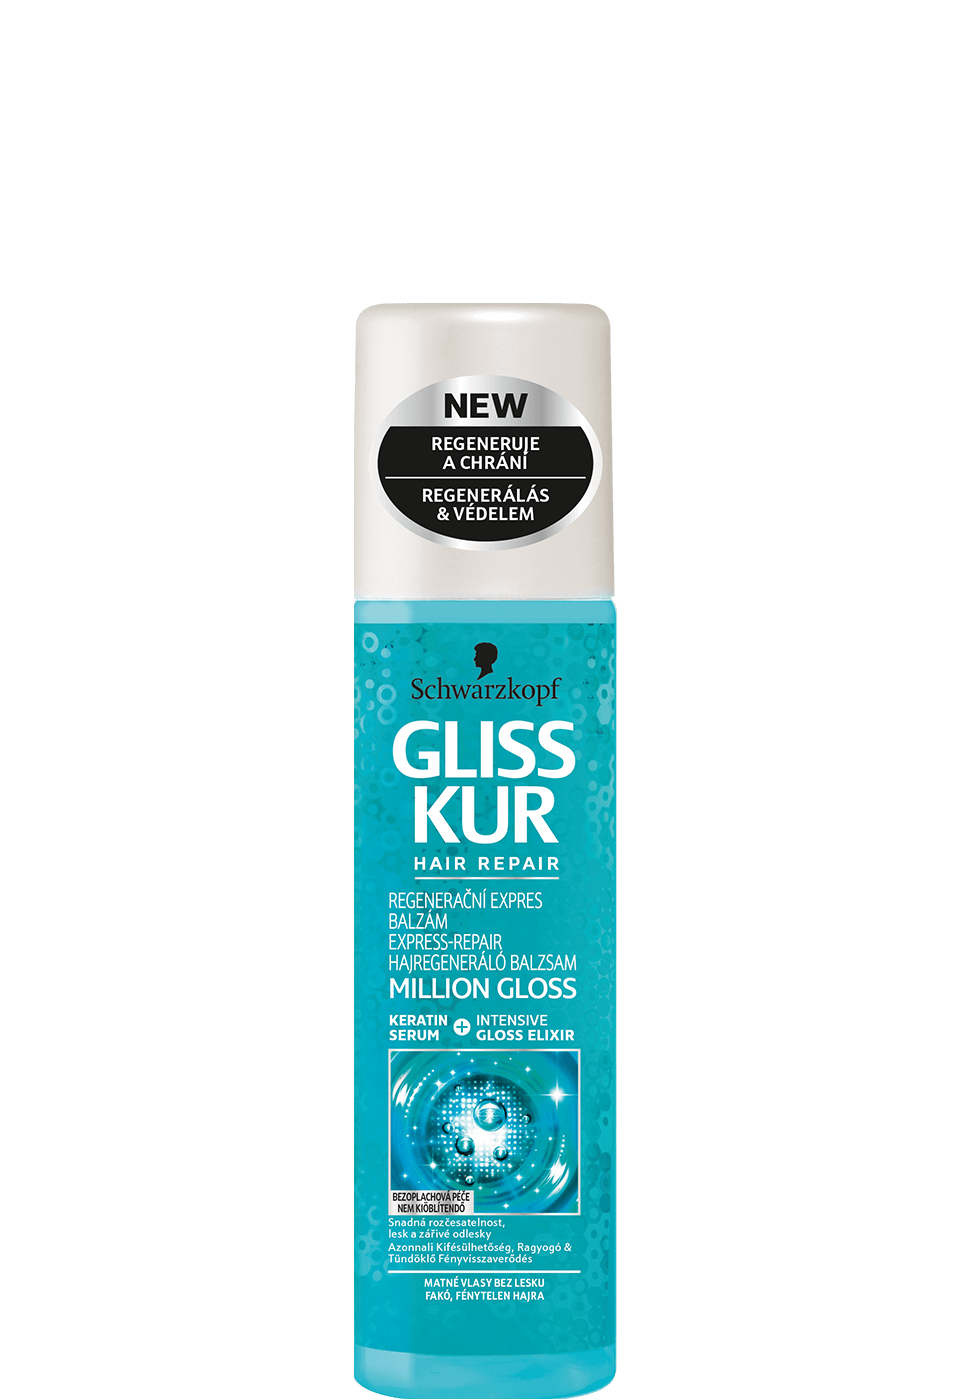 glisskur_de_million_gloss_express_repair_spuelung_970x1400